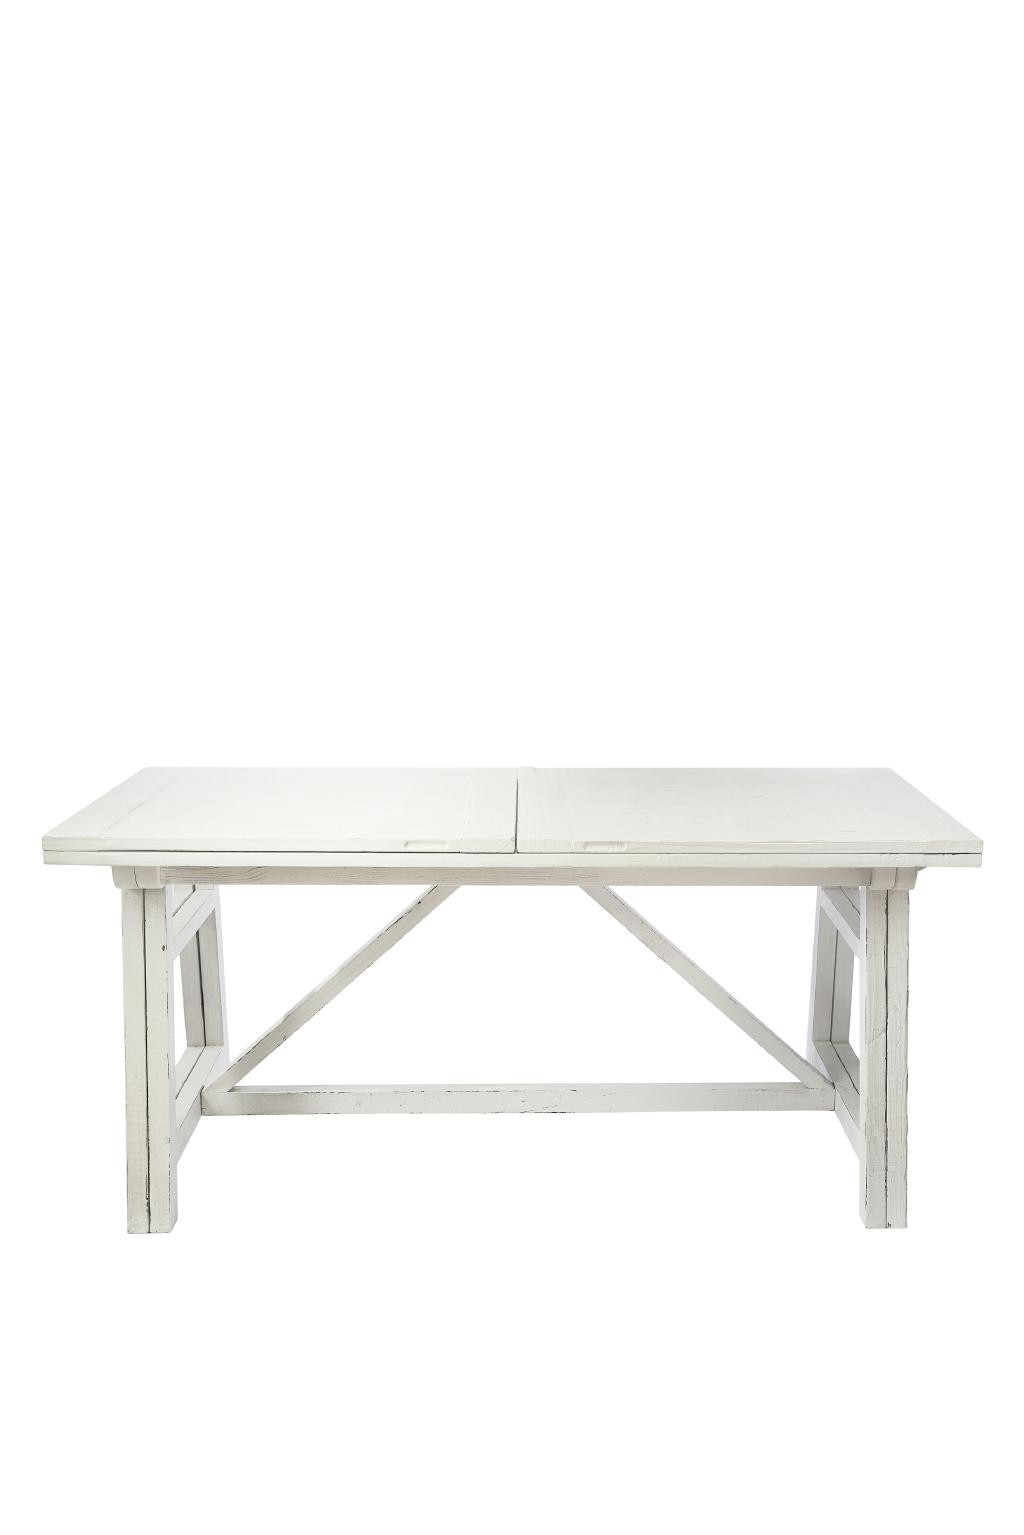 Cala Bassa Dining Table White 170/340x90 cm / Rivièra Maison